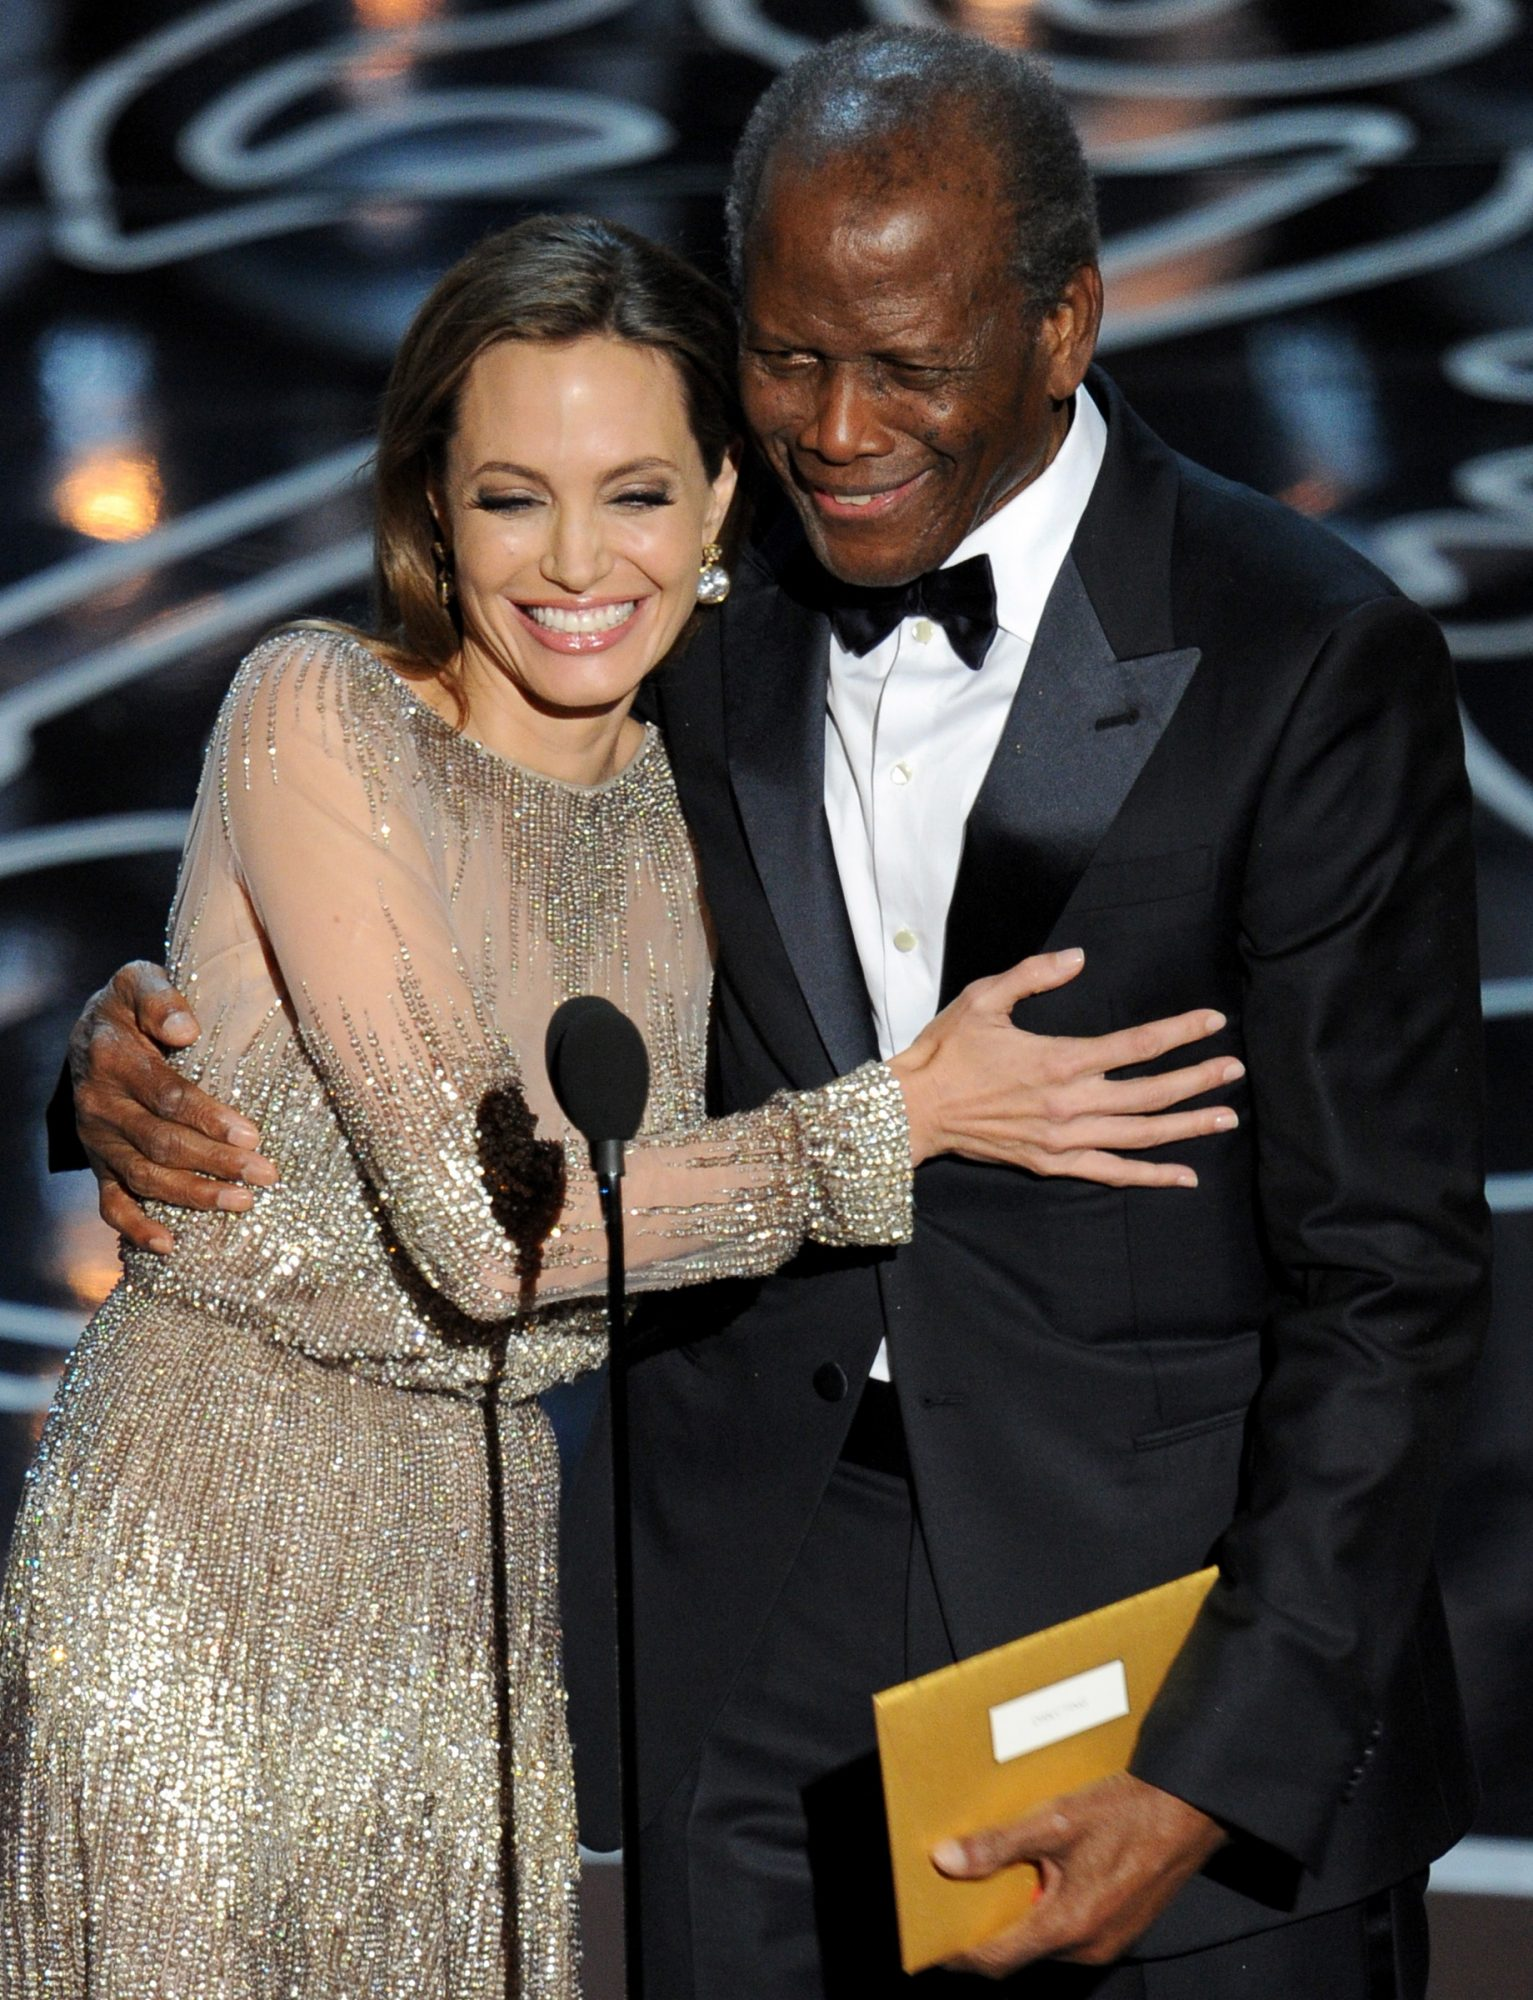 Angelina Jolie (L) and Sidney Poitier walk onstage during the Oscars at the Dolby Theatre on March 2, 2014